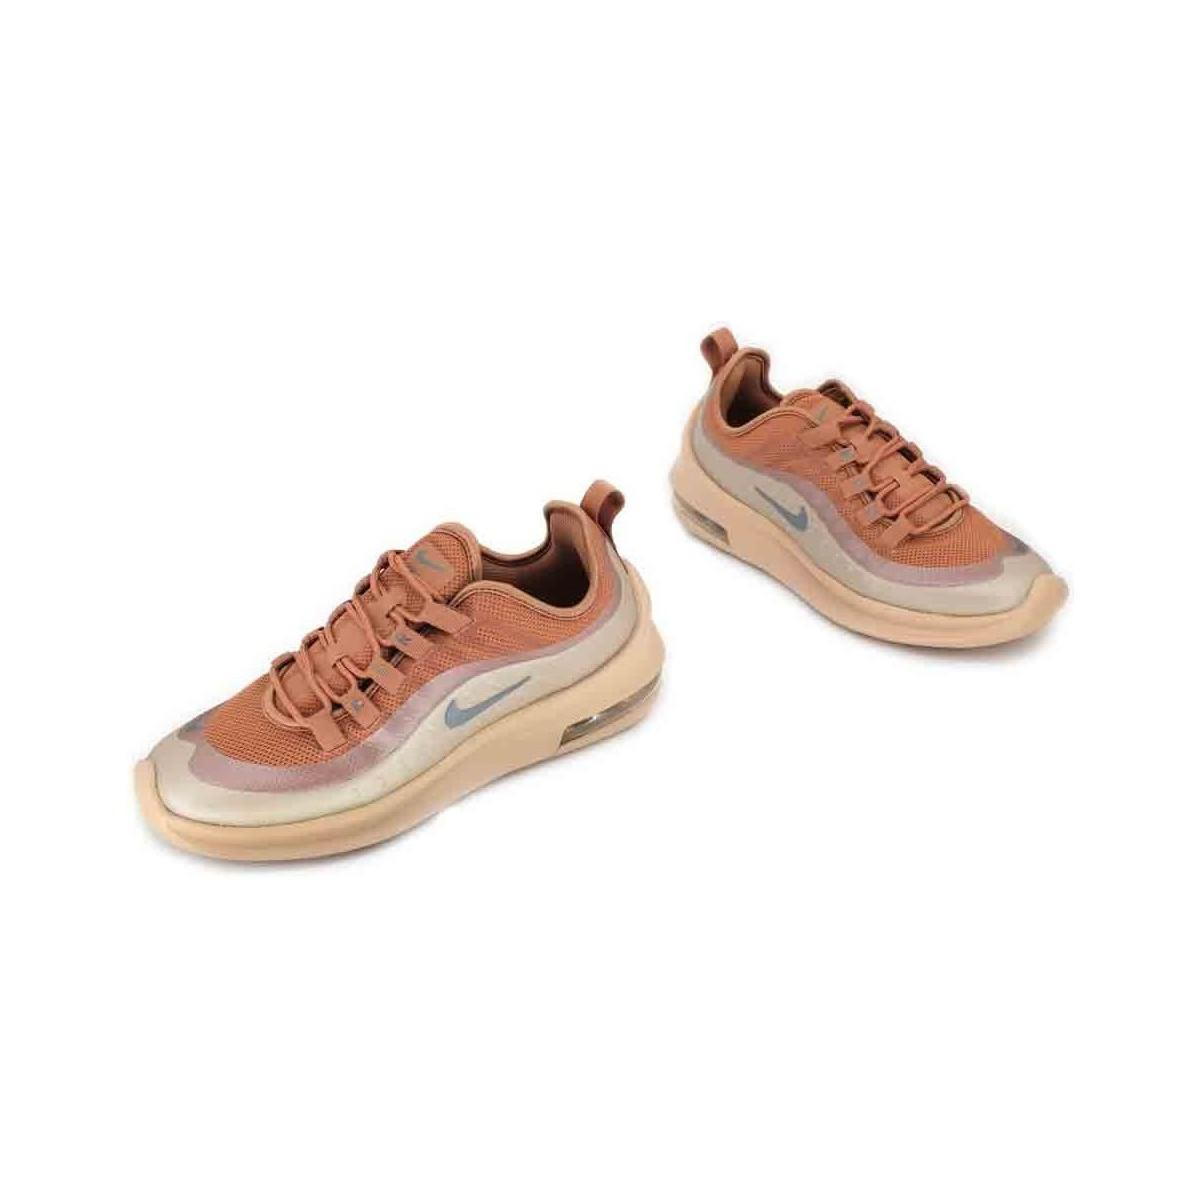 new product 4db5a f8f4a Nike - Wmns Air Max Axis Aa2168 Women s Sneakers Women s Shoes (trainers)  In Pink. View fullscreen